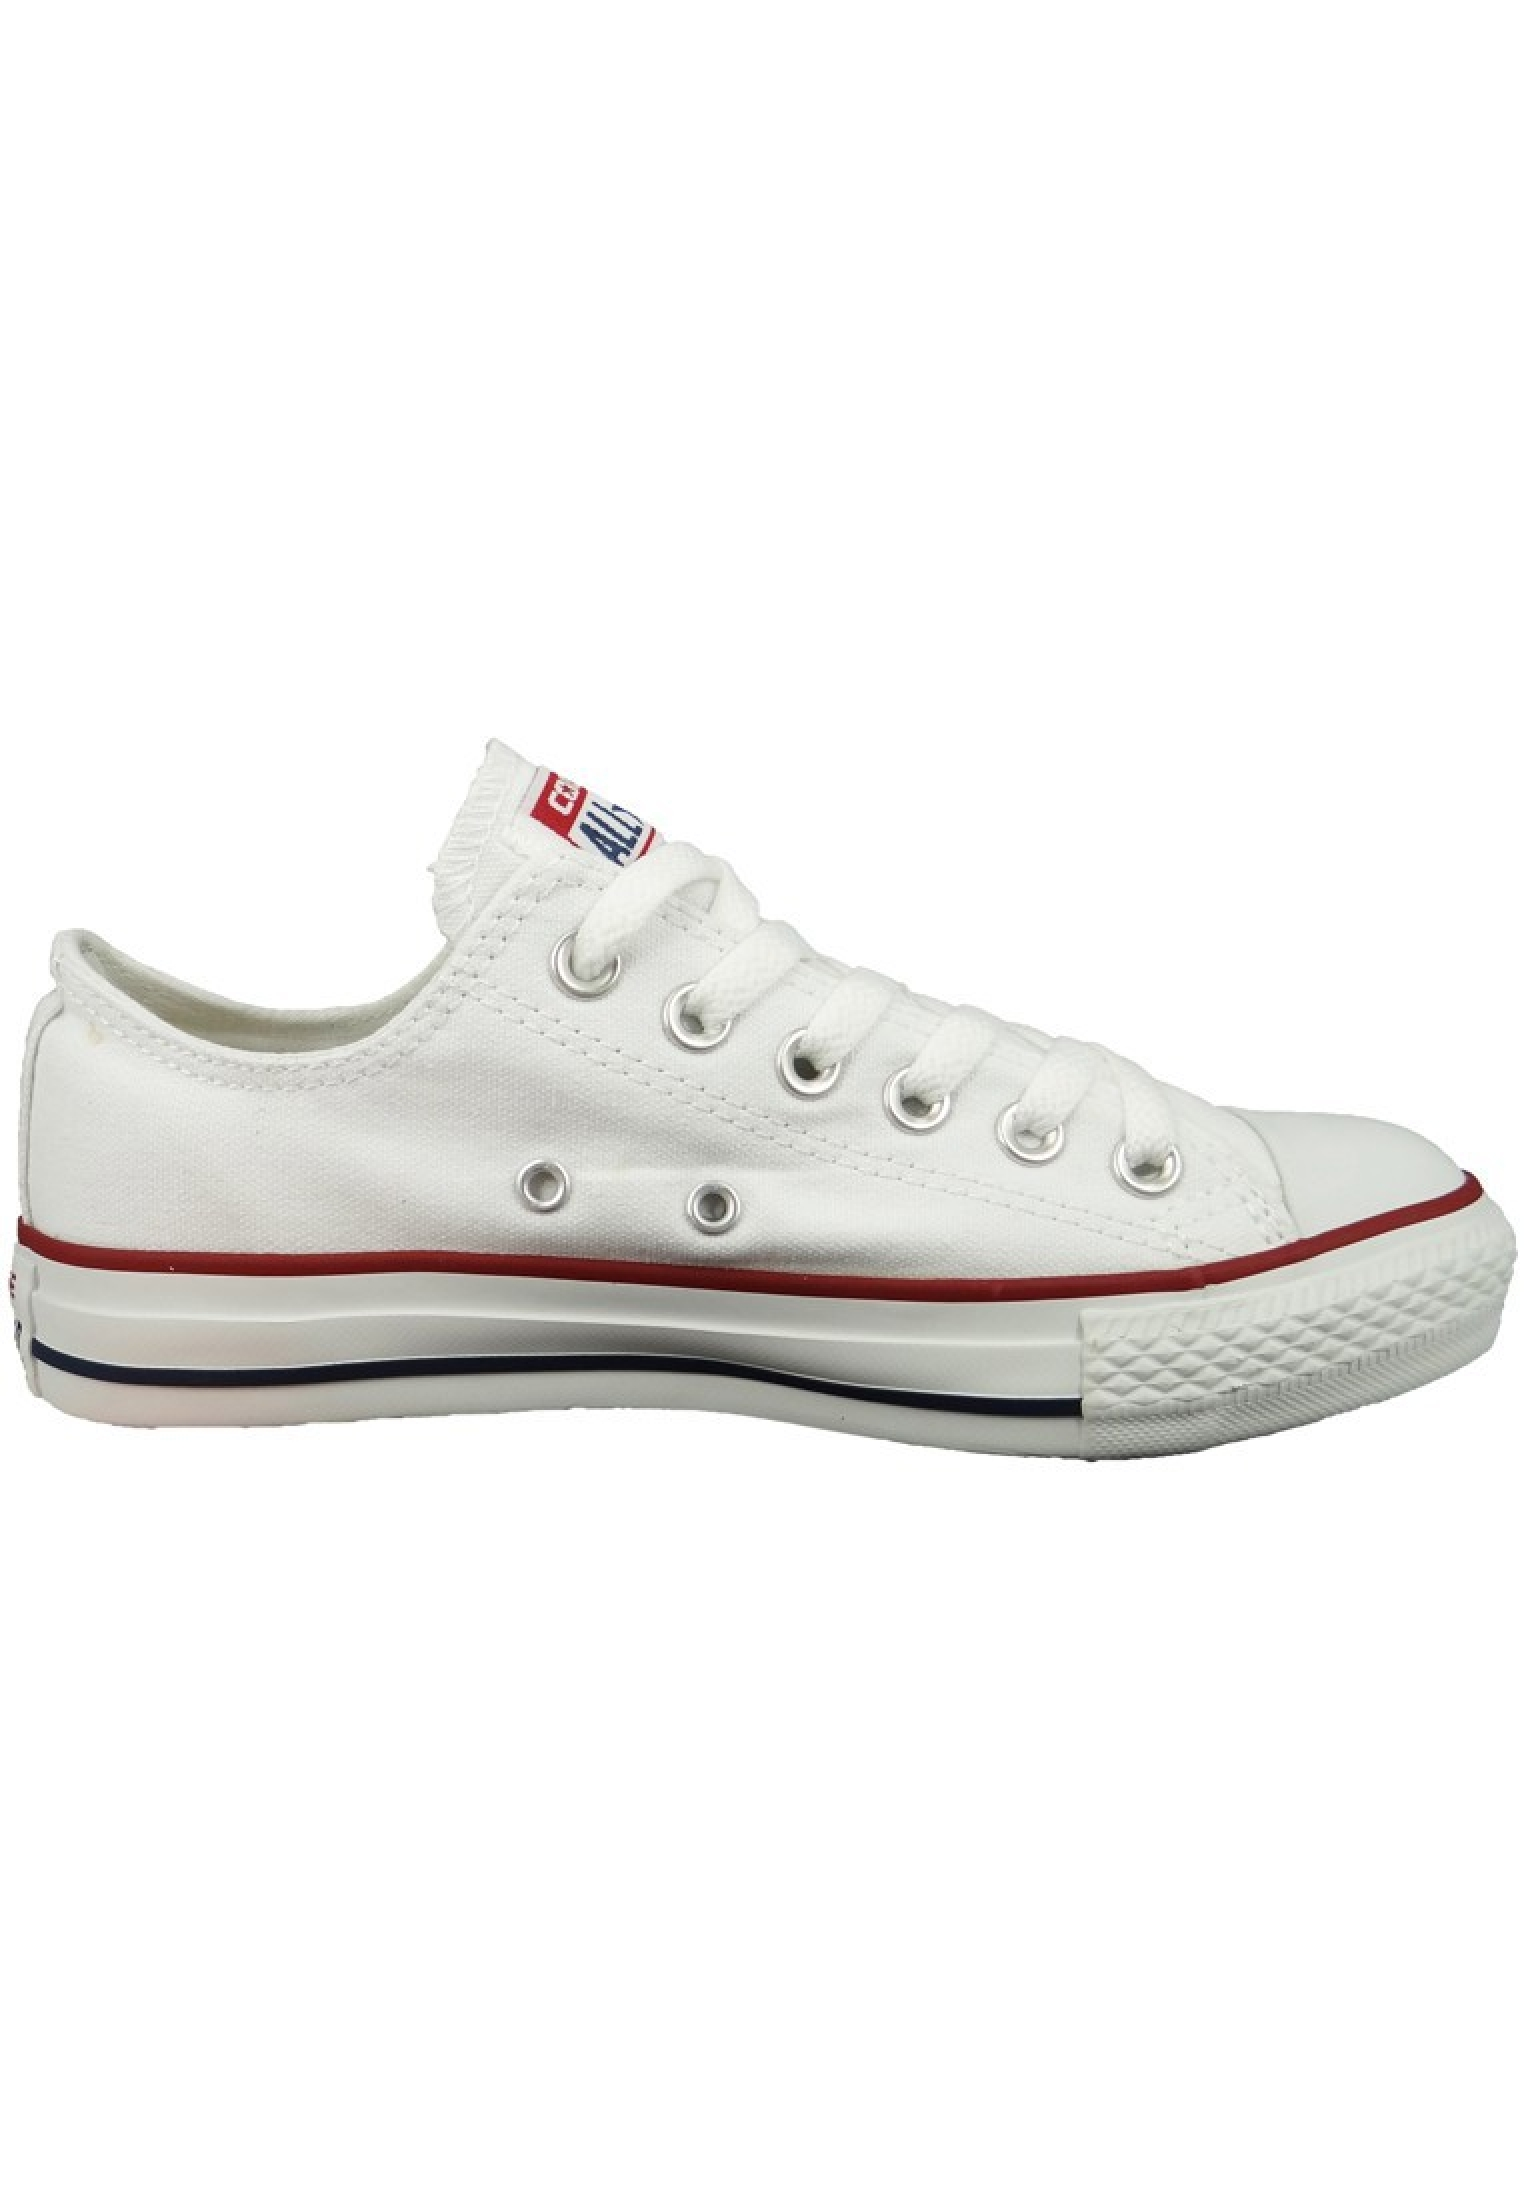 converse chucks m7652c opitcal white weiss as ox. Black Bedroom Furniture Sets. Home Design Ideas